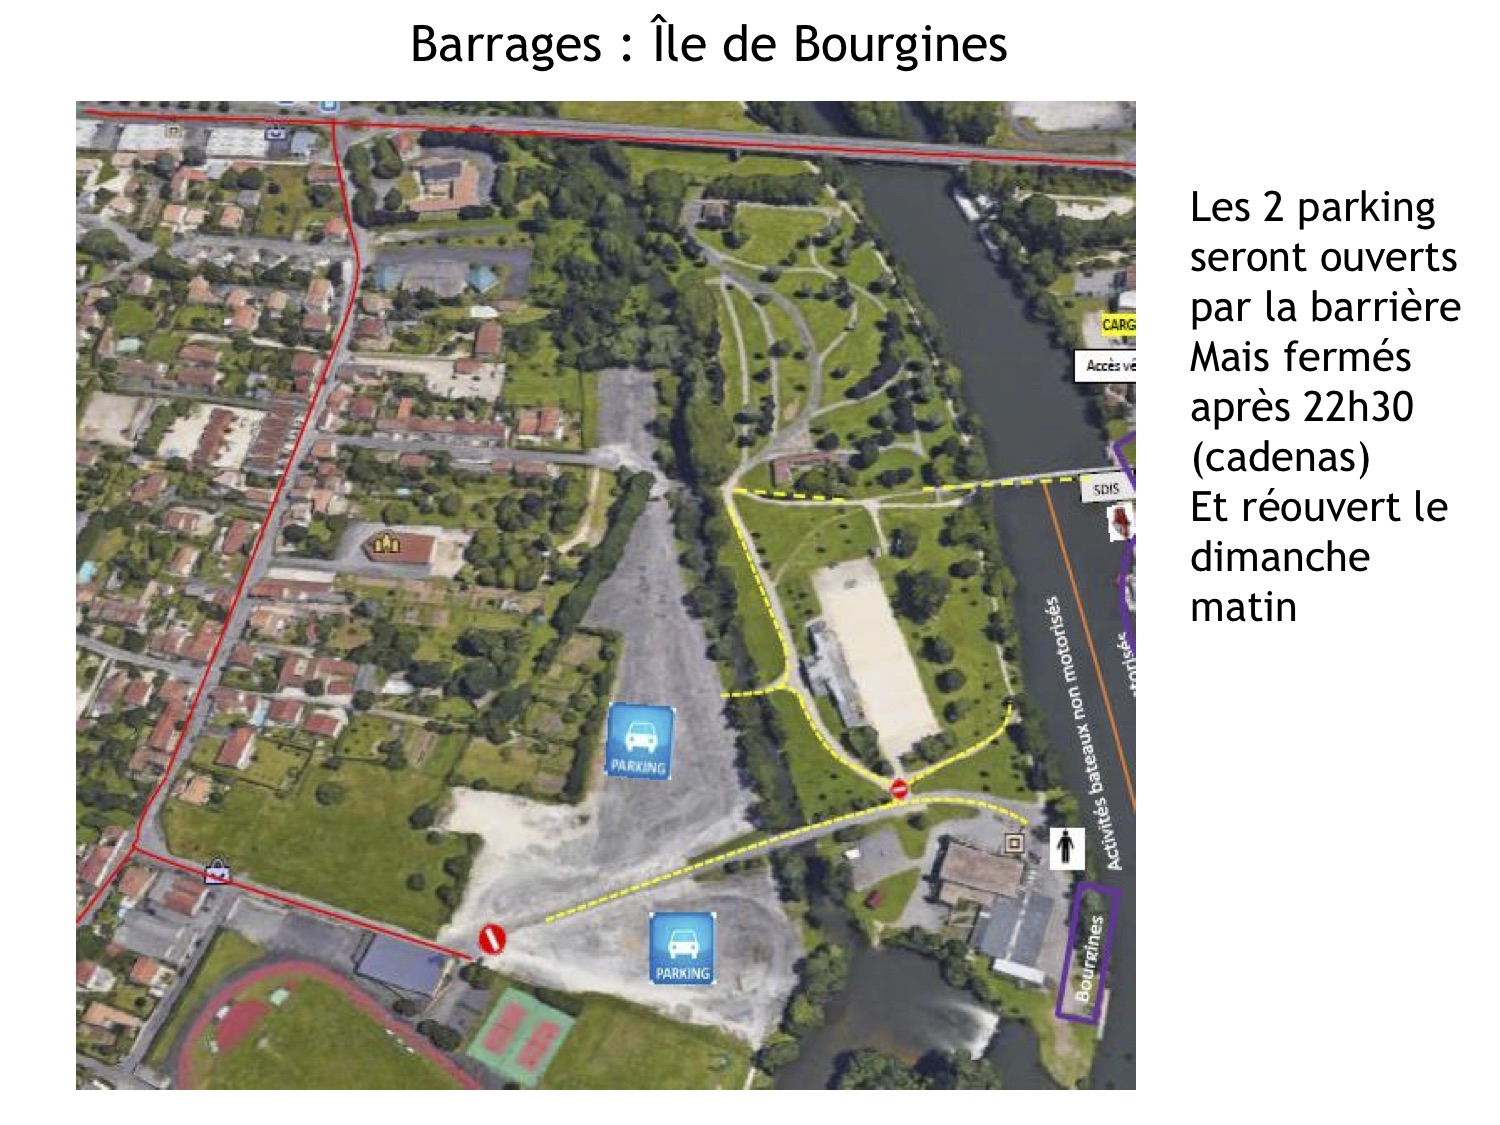 Barrages Bourgines.jpg